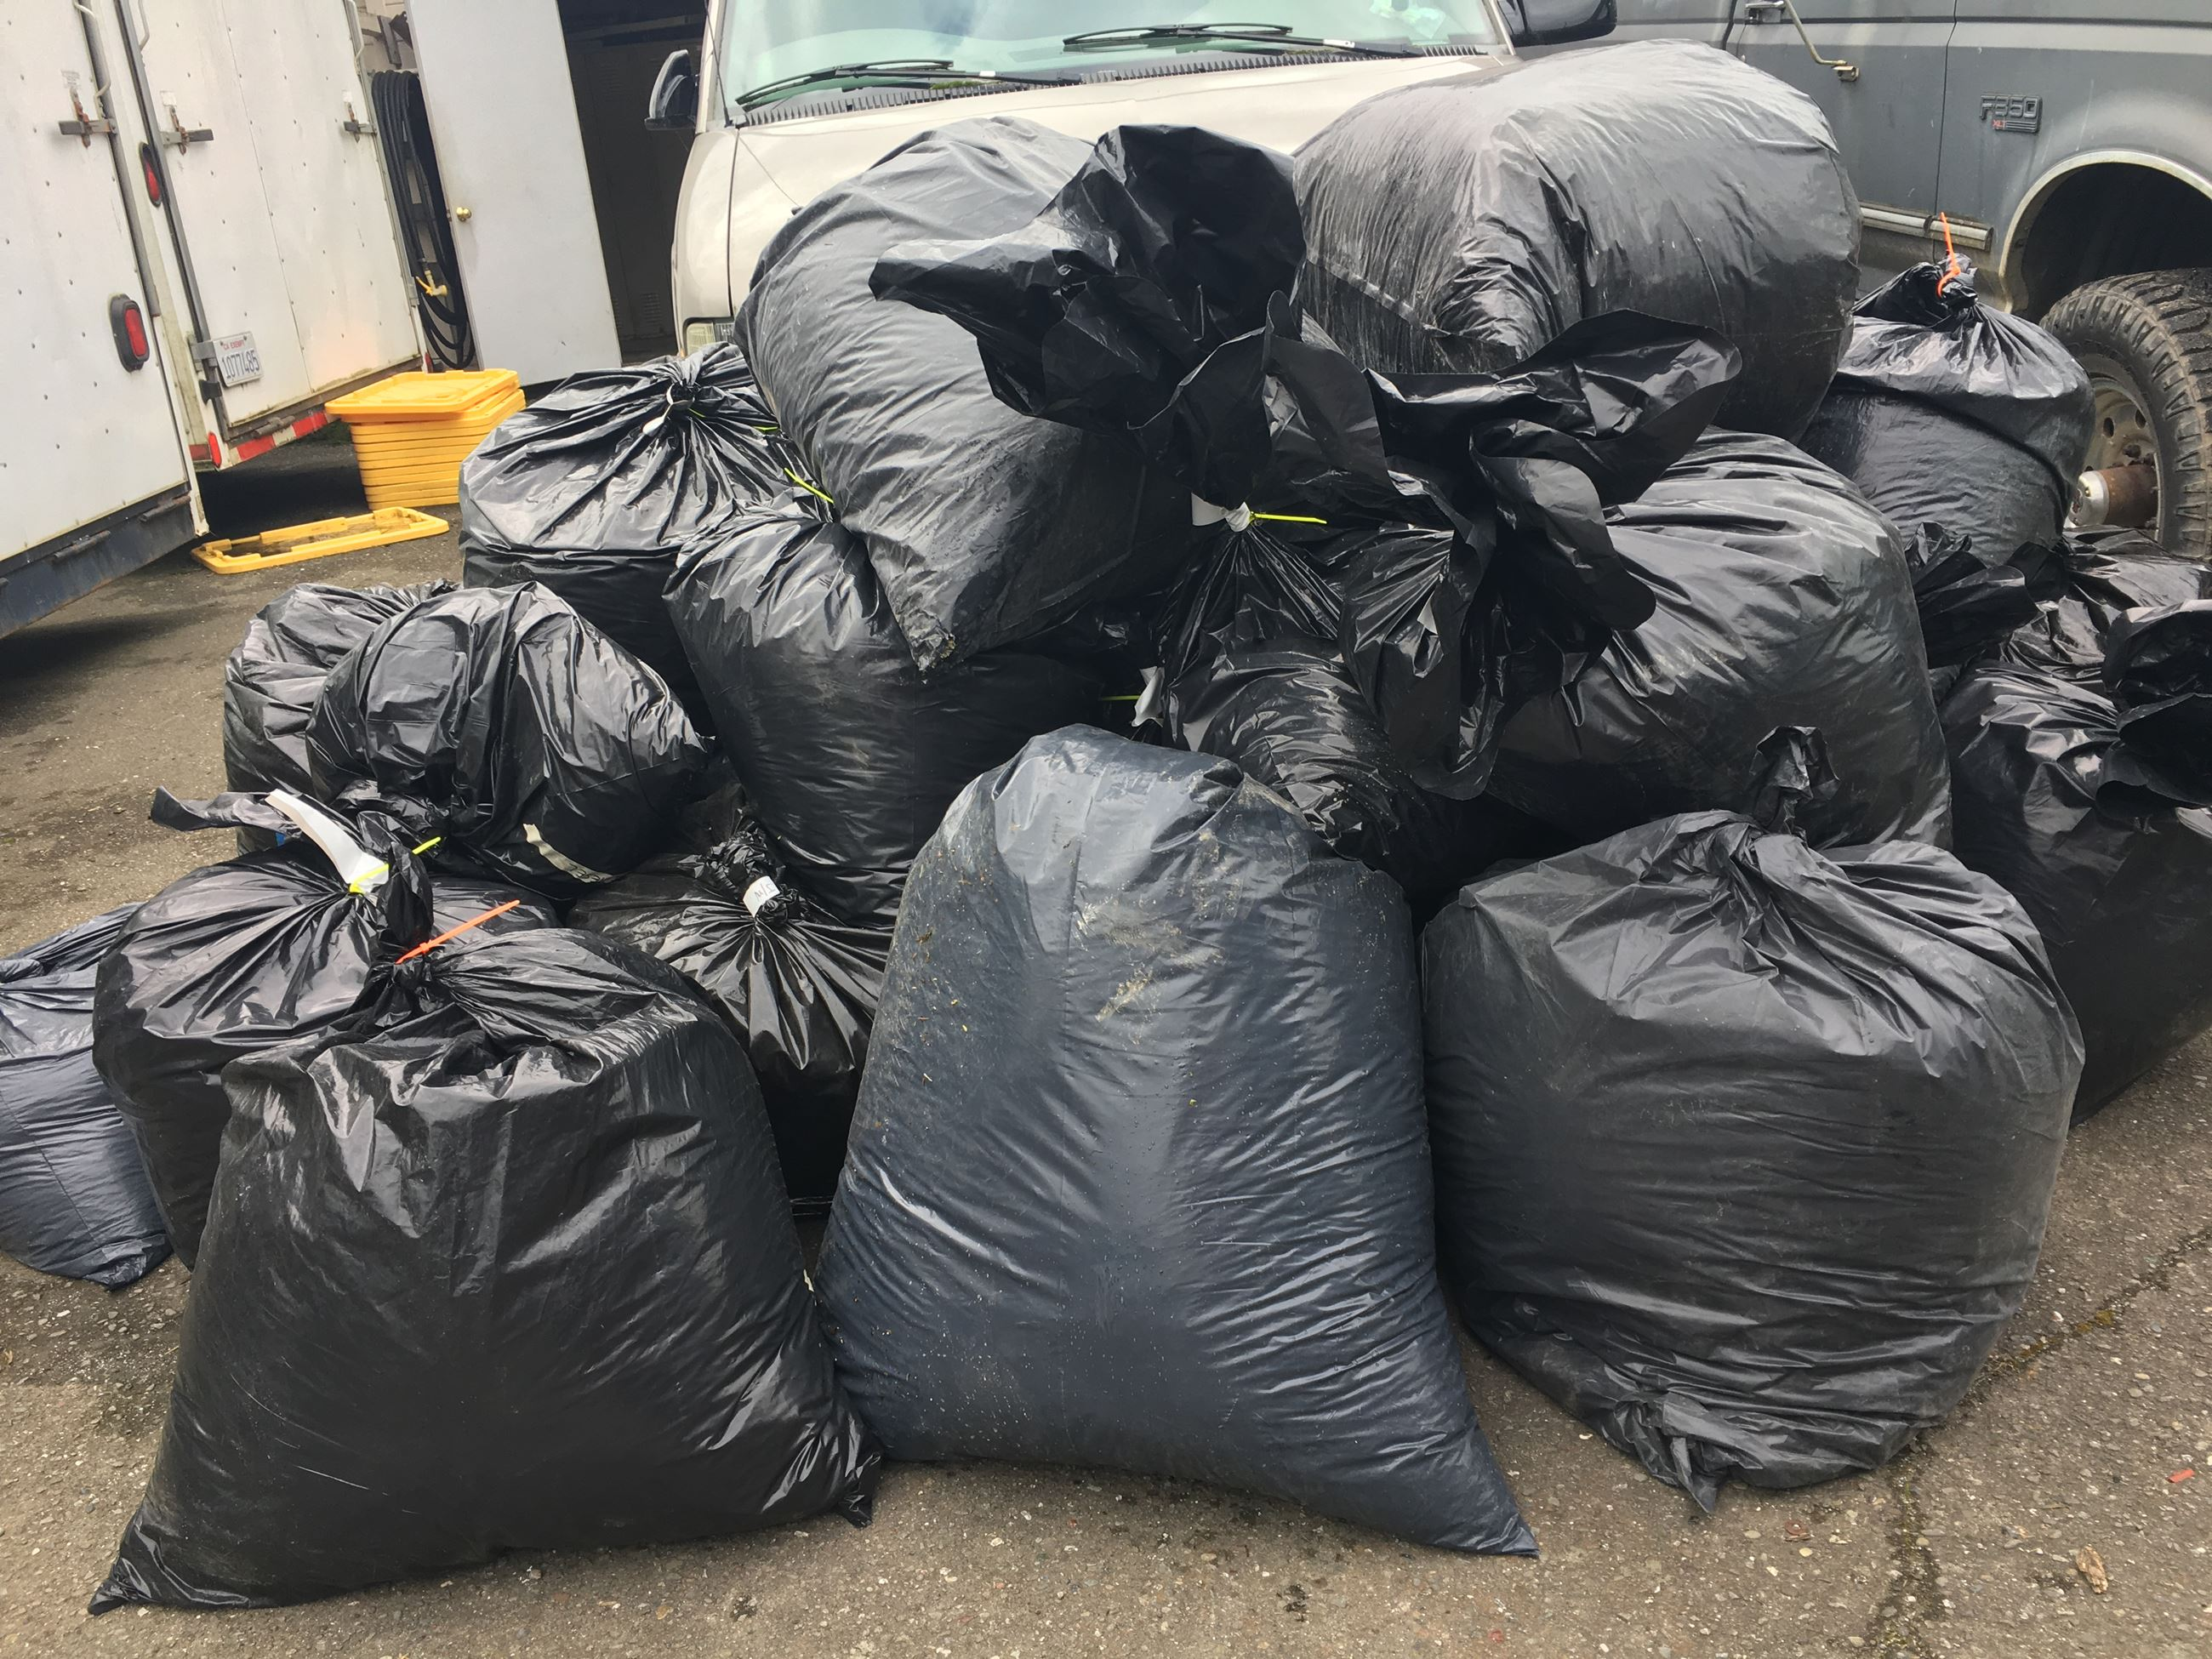 Black trash bags filled with processed cannabis